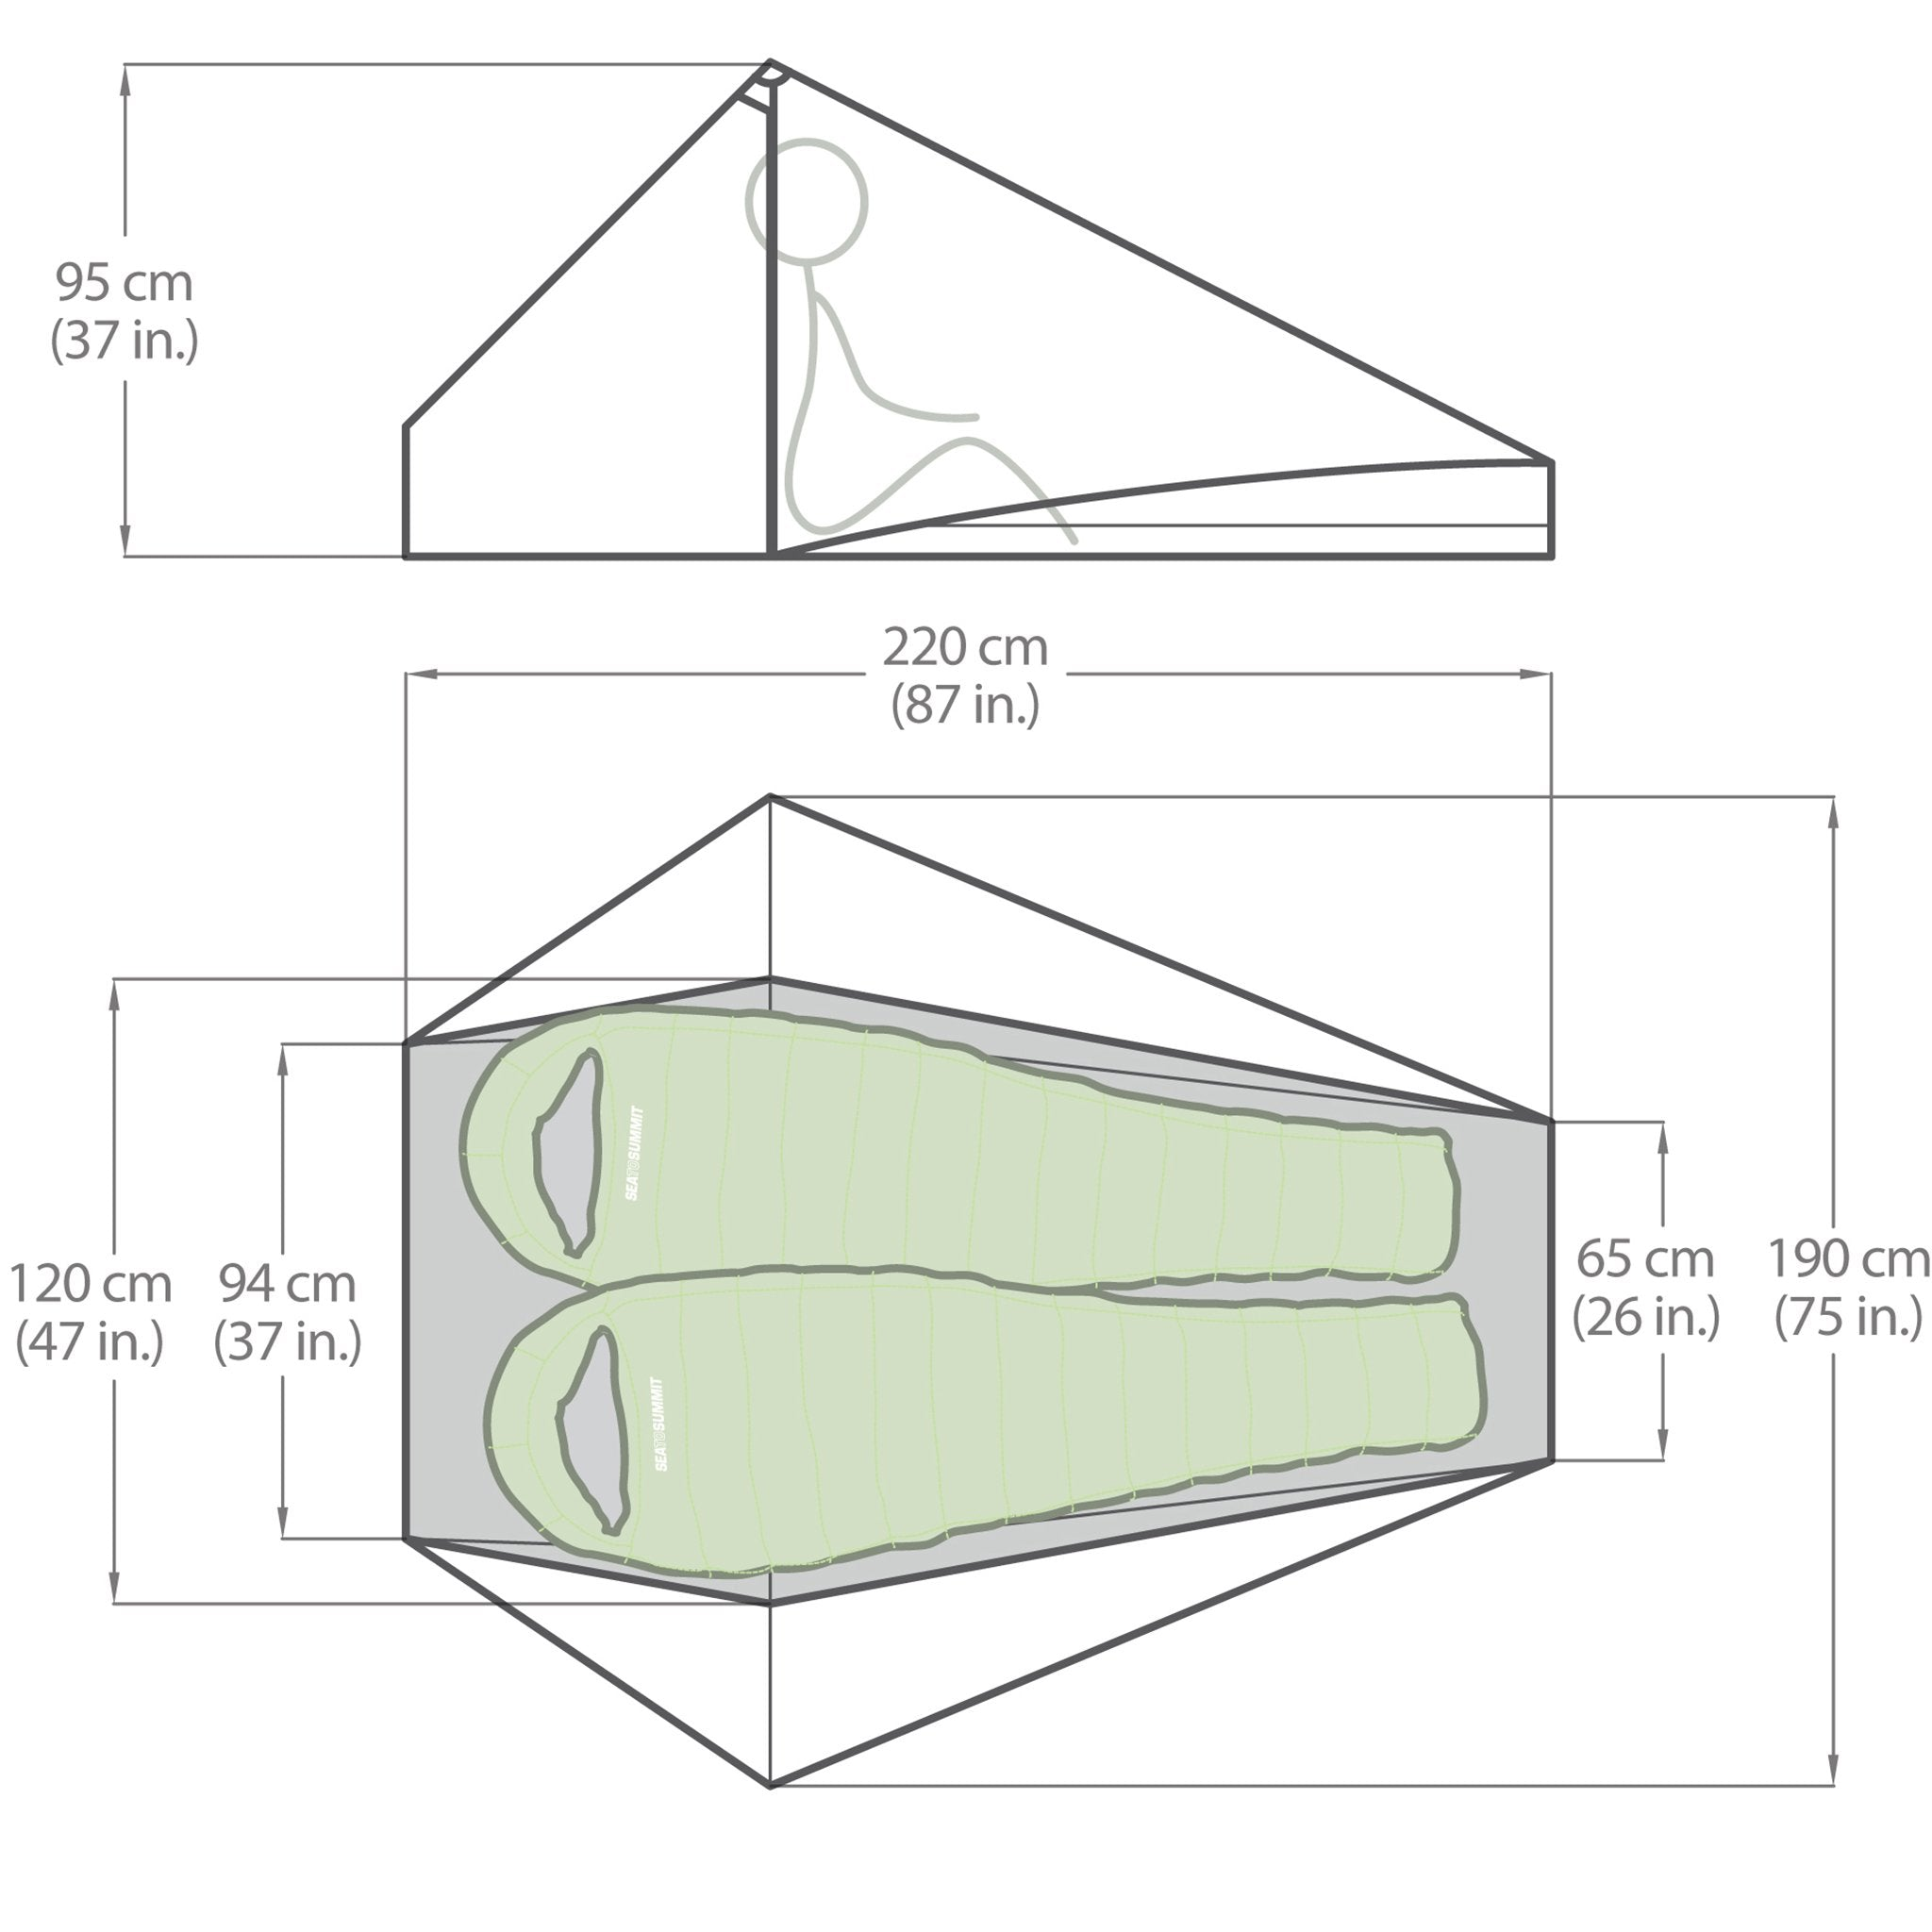 Specialist Tent _ Ultralight Backpacking Tent _ Duo _ sizing